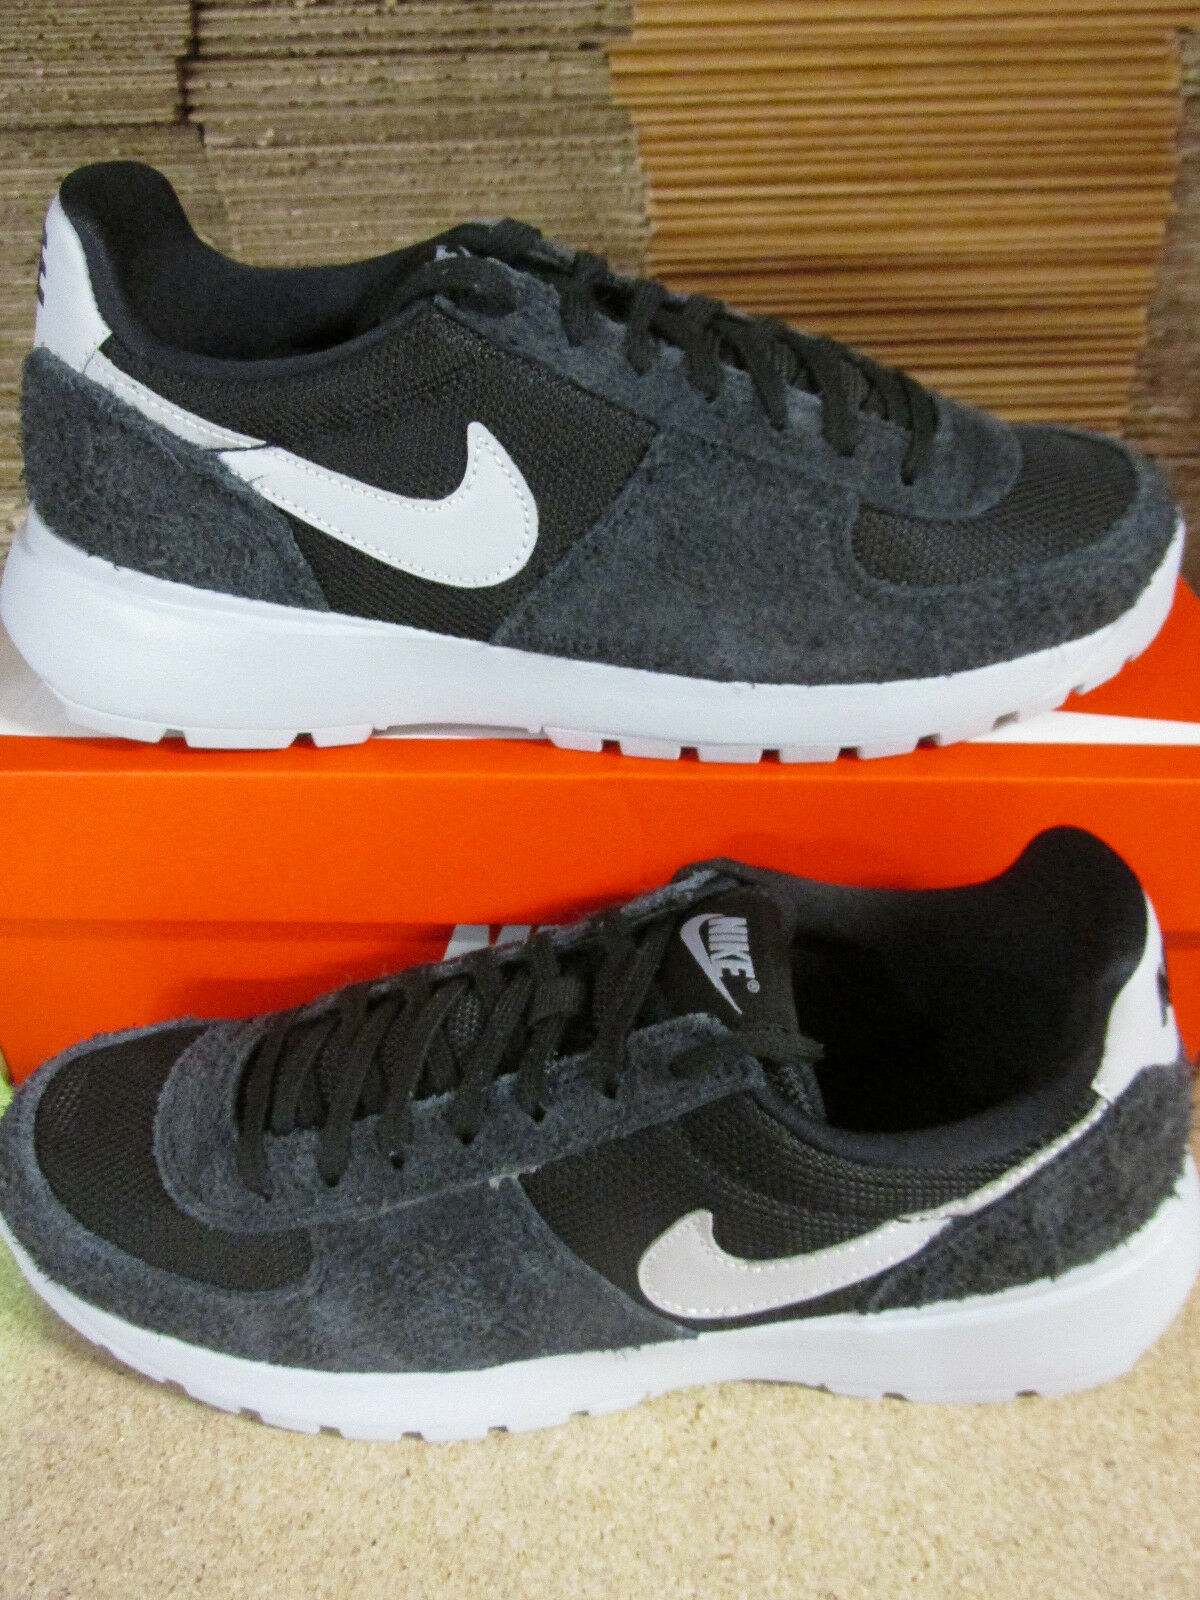 Nike Lavadome Ultra Baskets Hommes 844574 002 Baskets